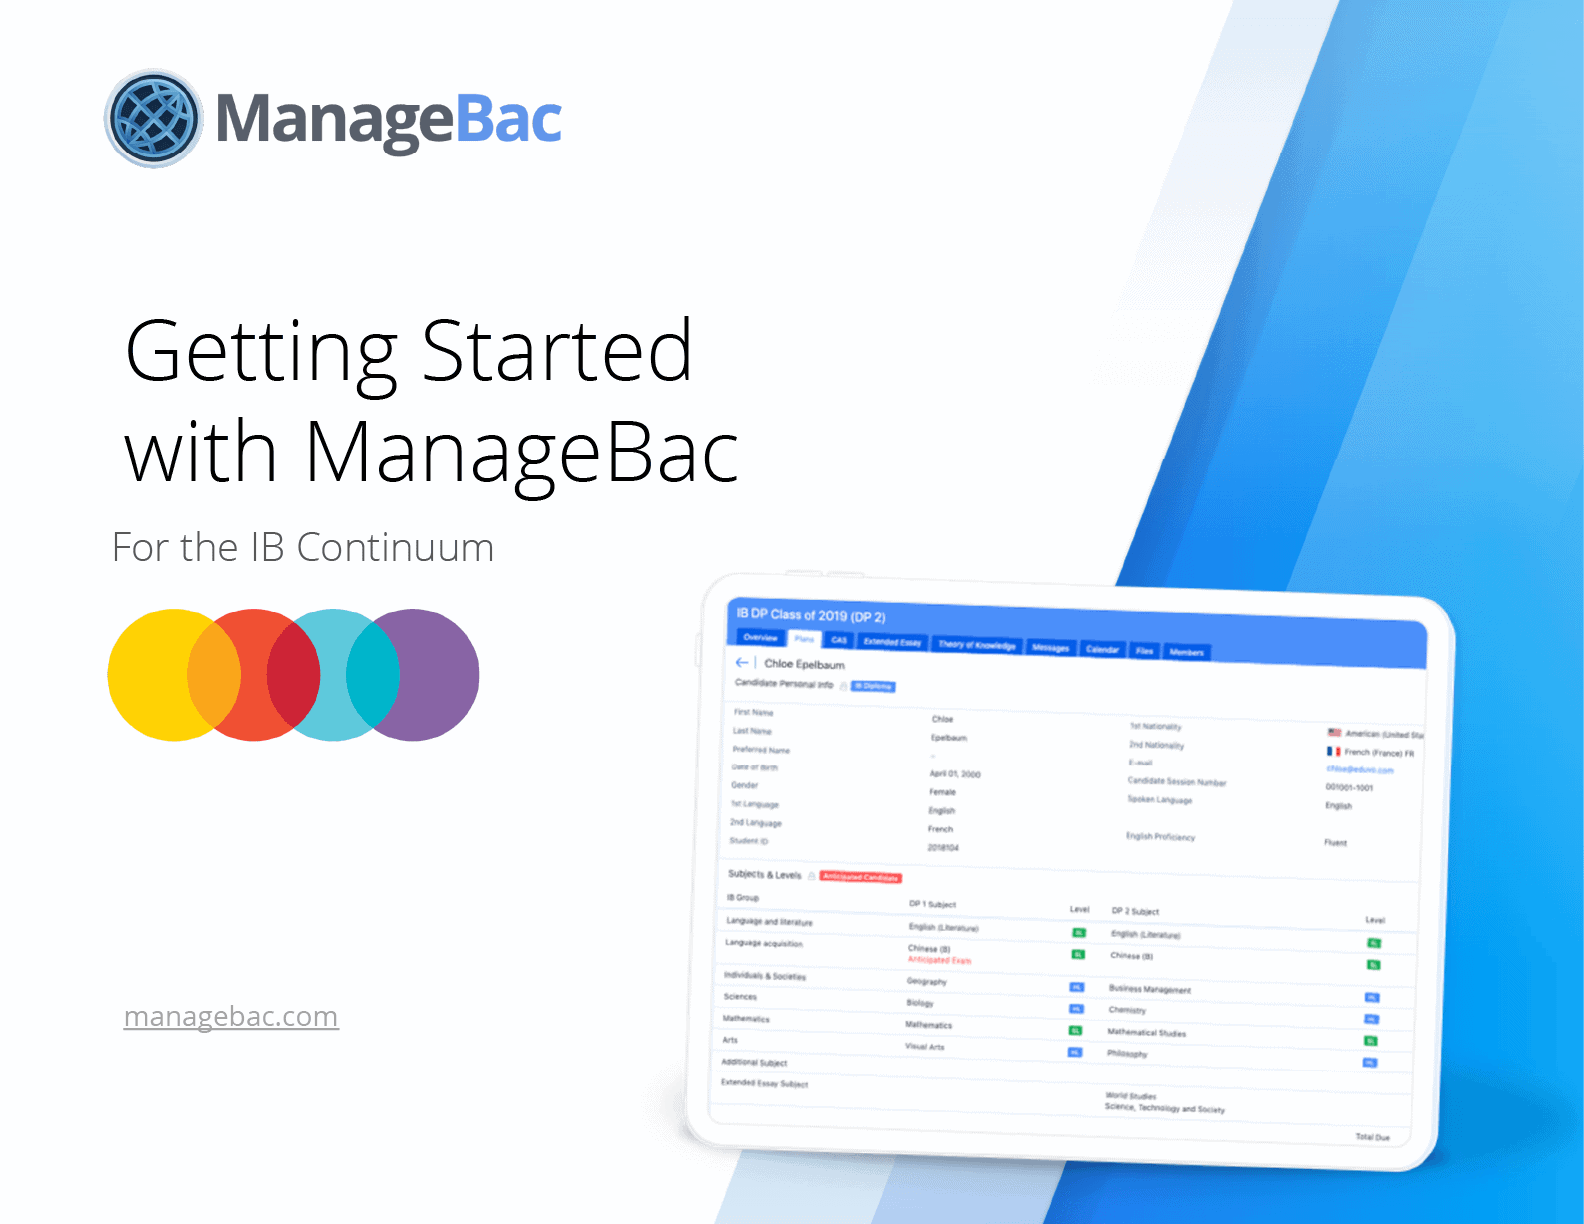 Getting Started with ManageBac for the IB Continuum